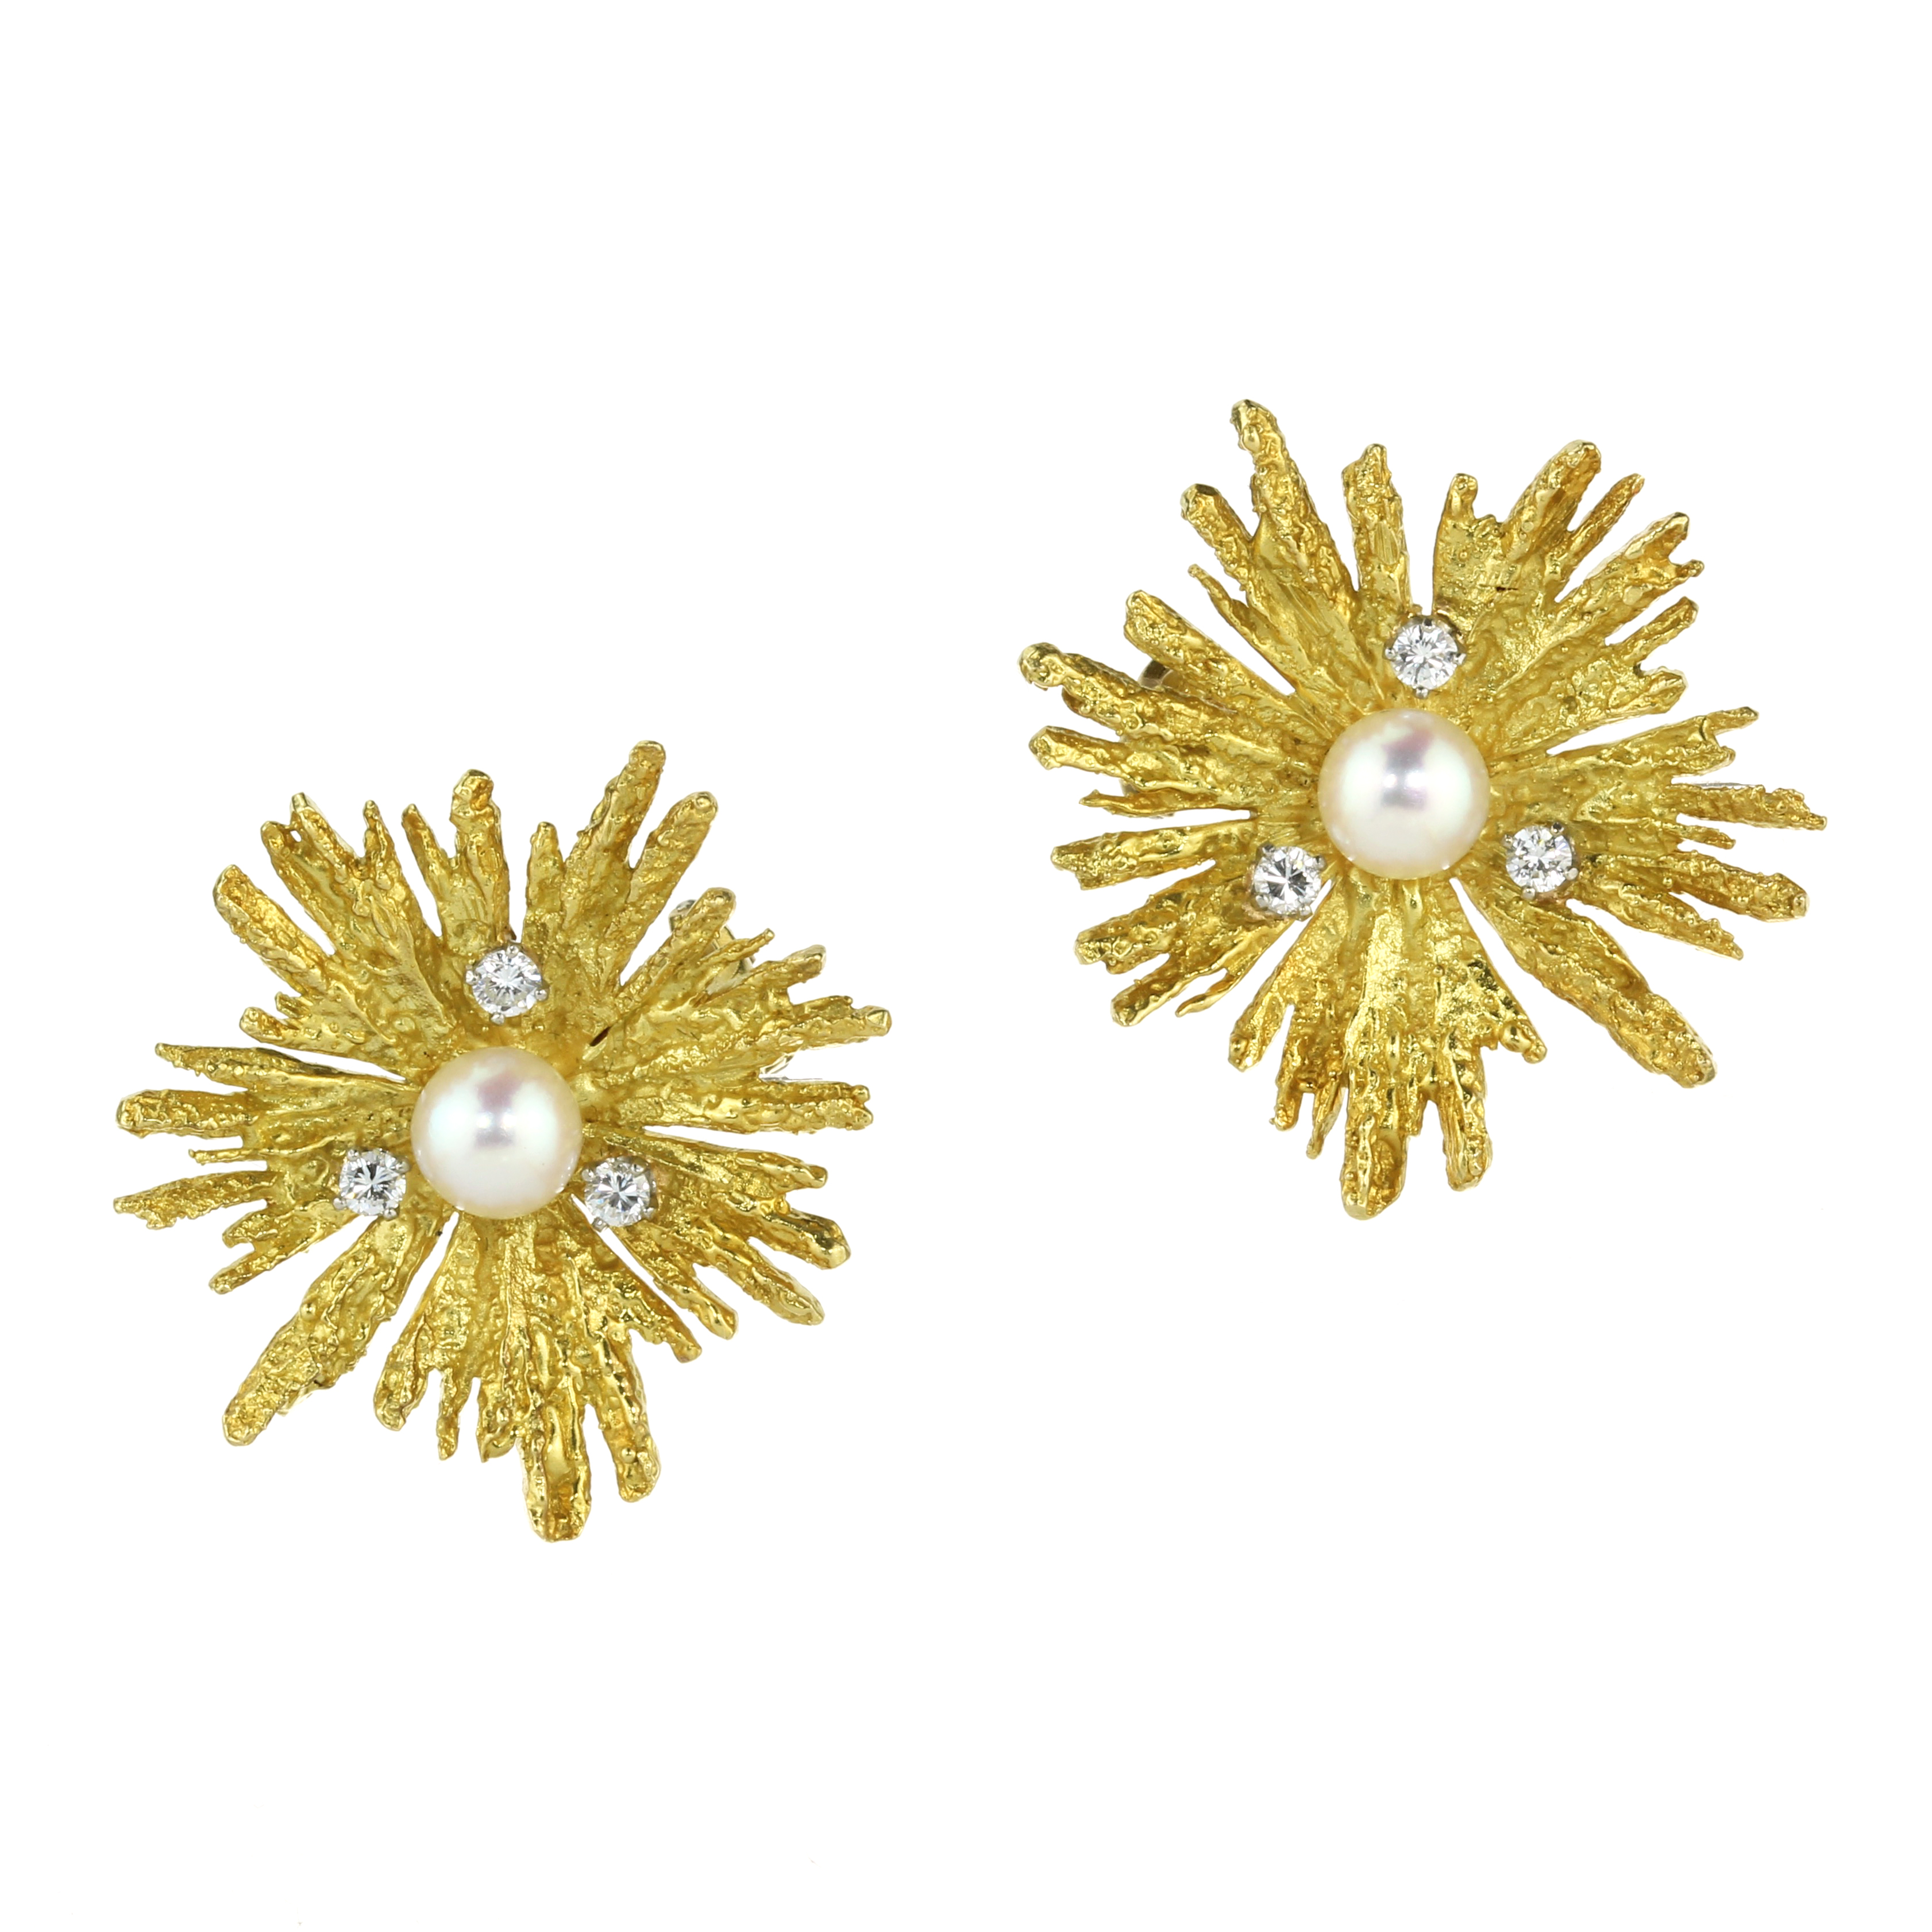 Los 12 - A PAIR OF PEARL AND DIAMOND EARRINGS in 18ct yellow gold each set with a central pearl surrounded by